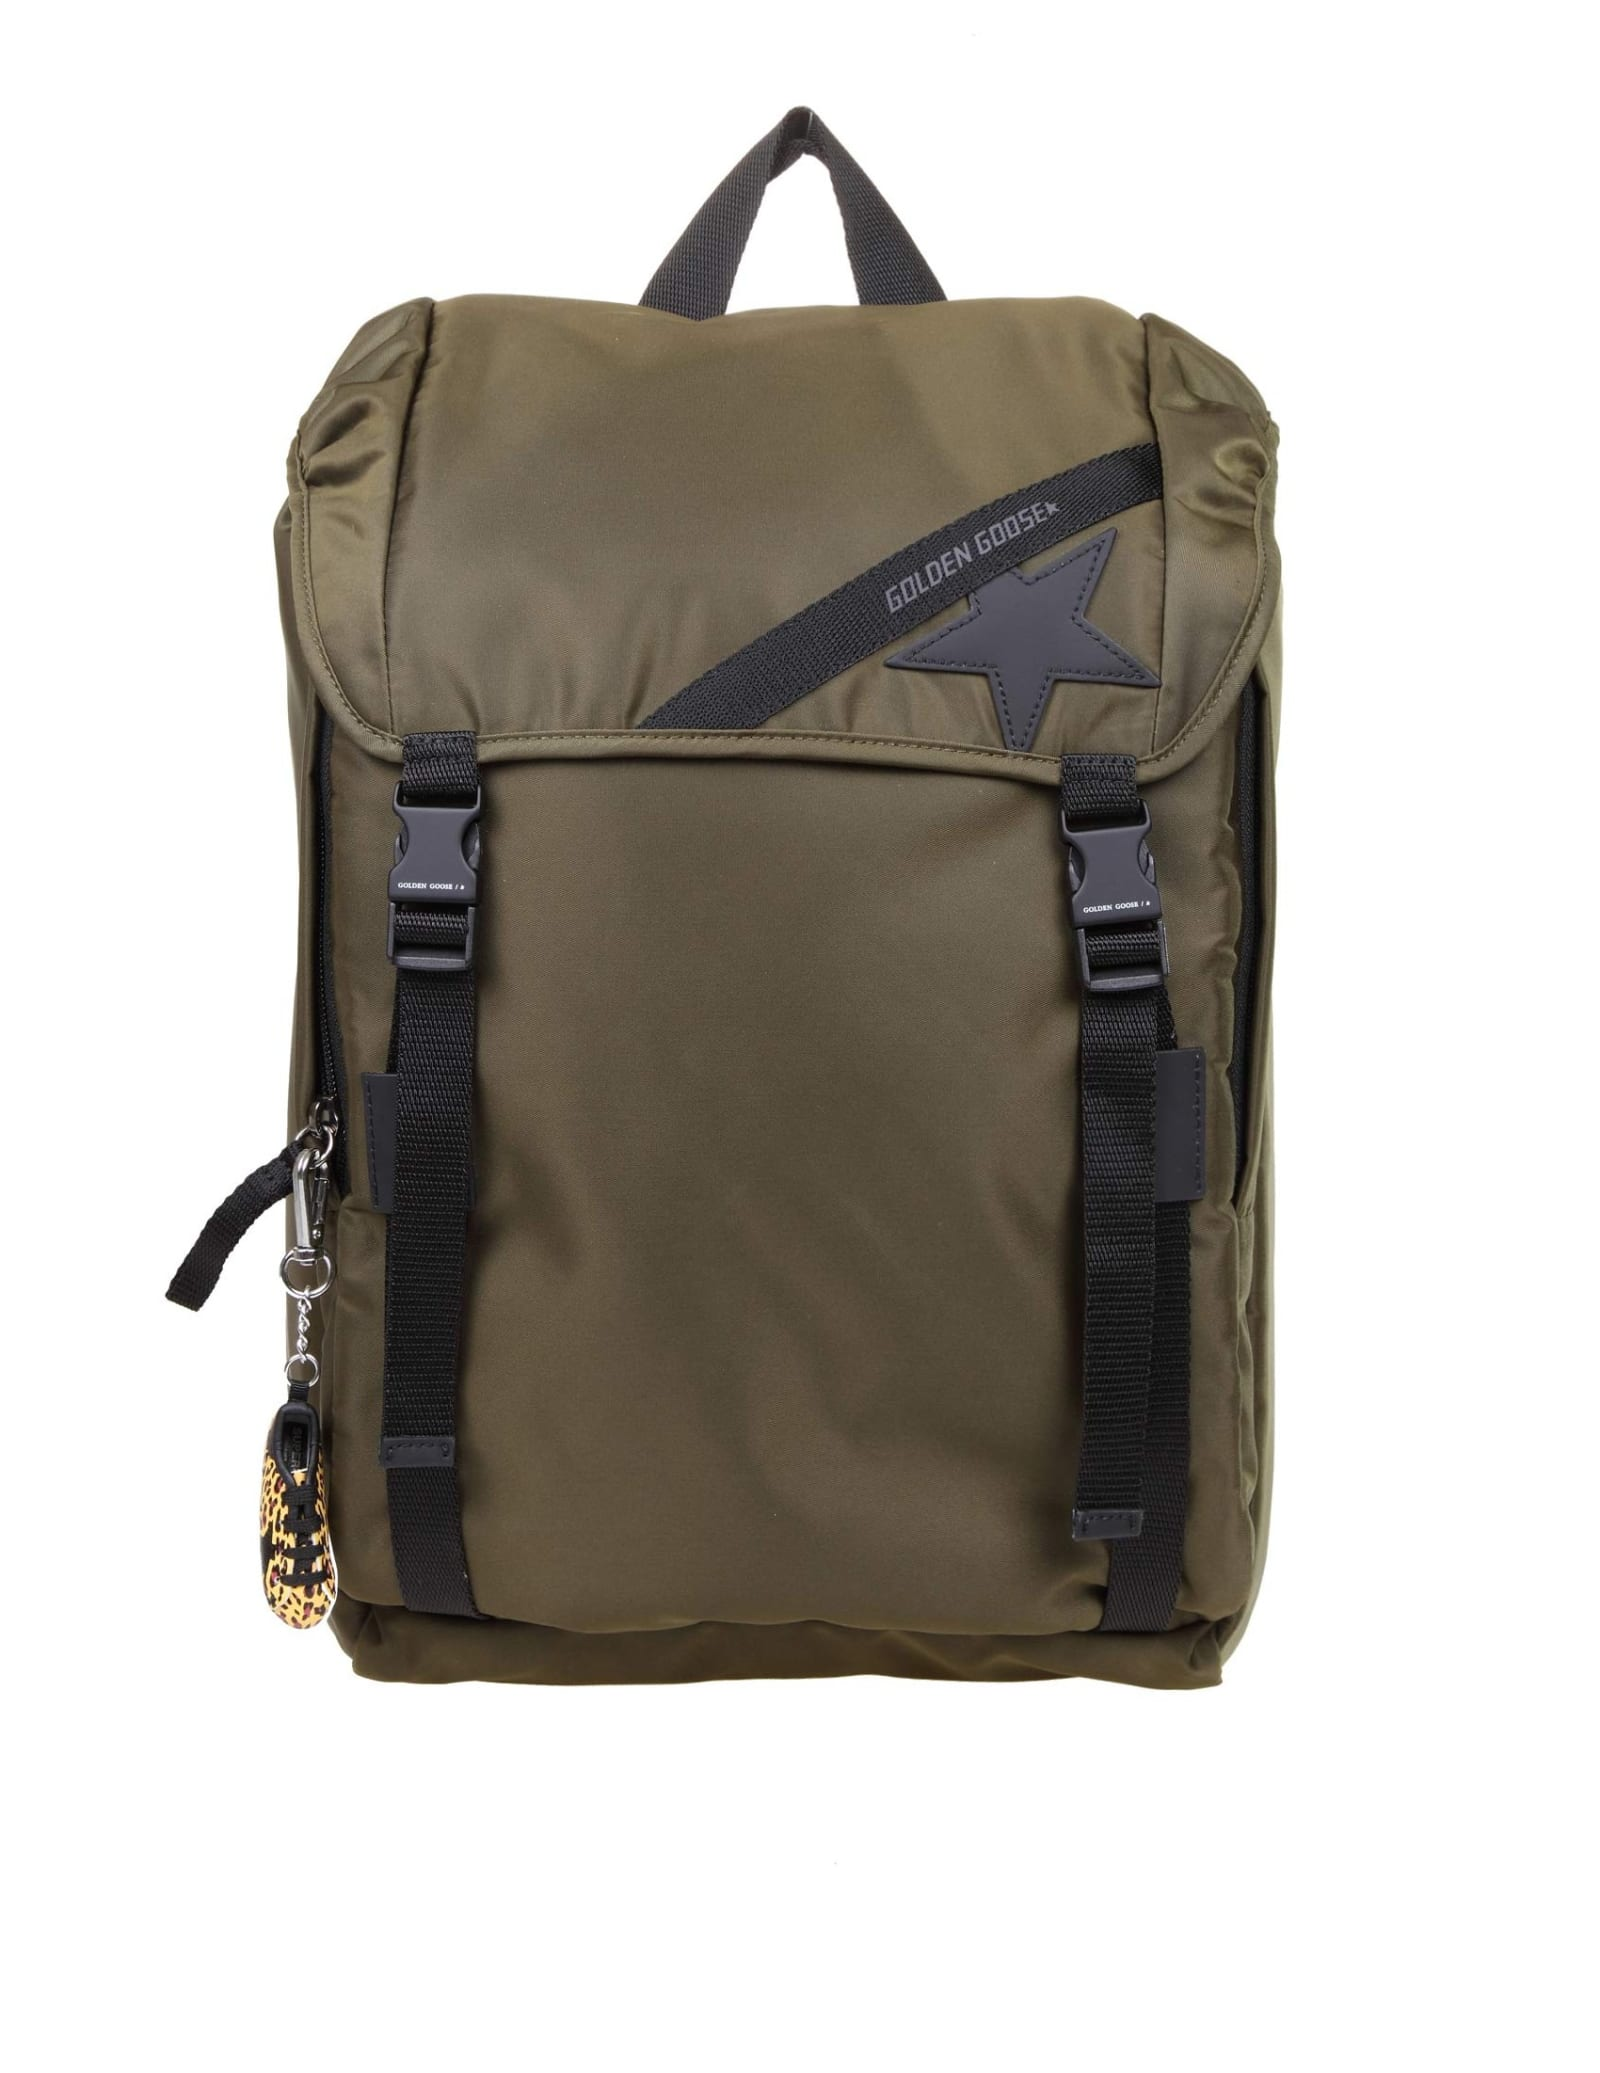 Golden Goose JOURNEY BACKPACK IN MILITARY GREEN TECHNICAL FABRIC